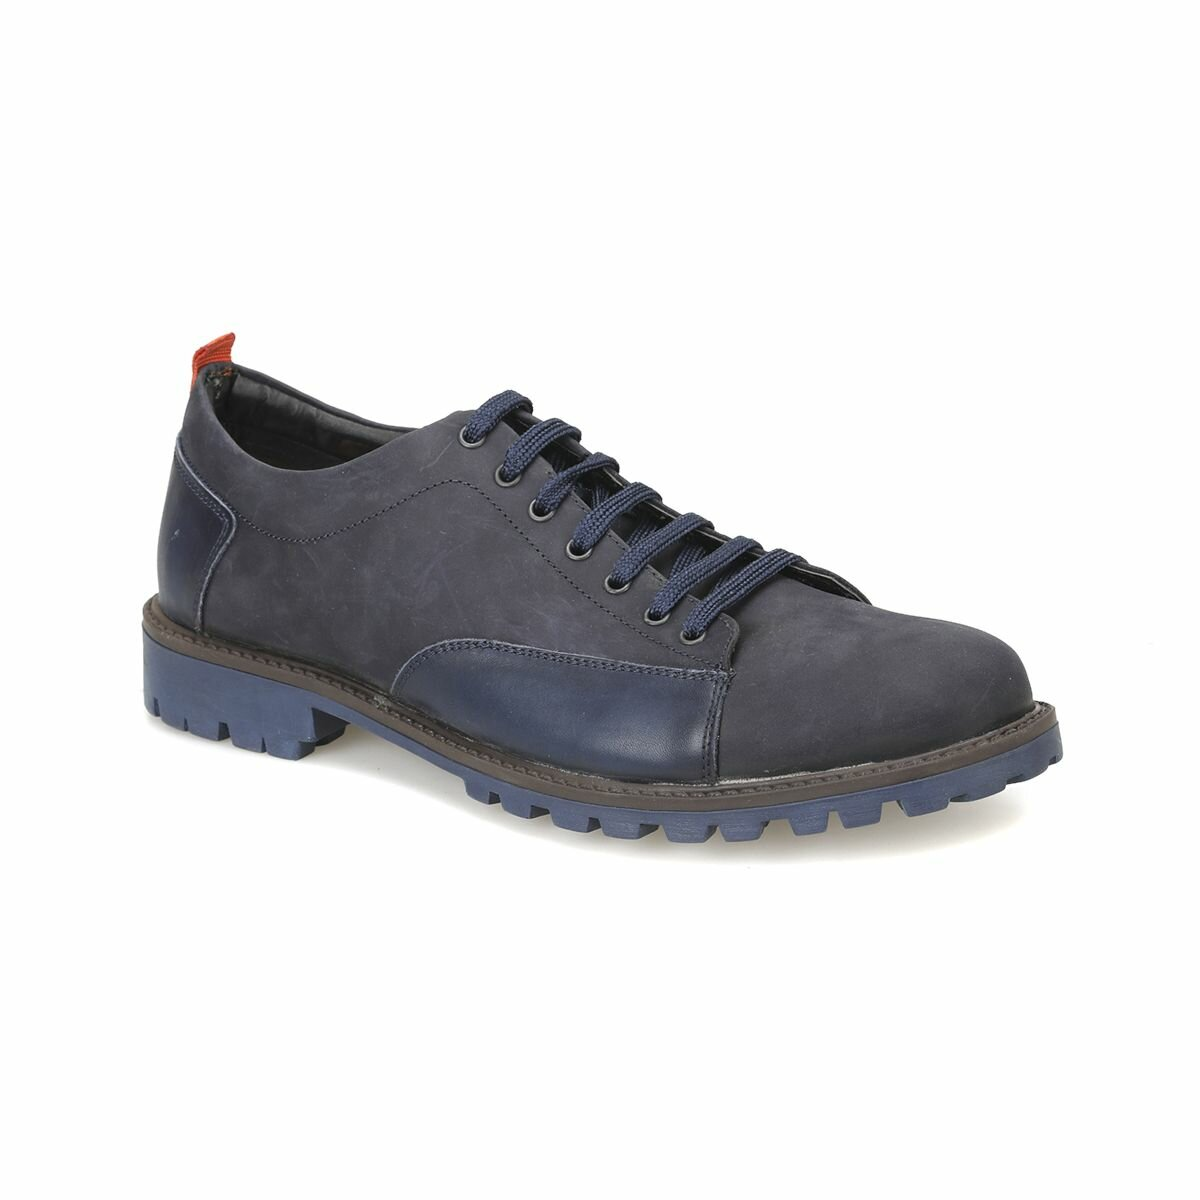 FLO 912 Navy Blue Men 'S Shoes Forester